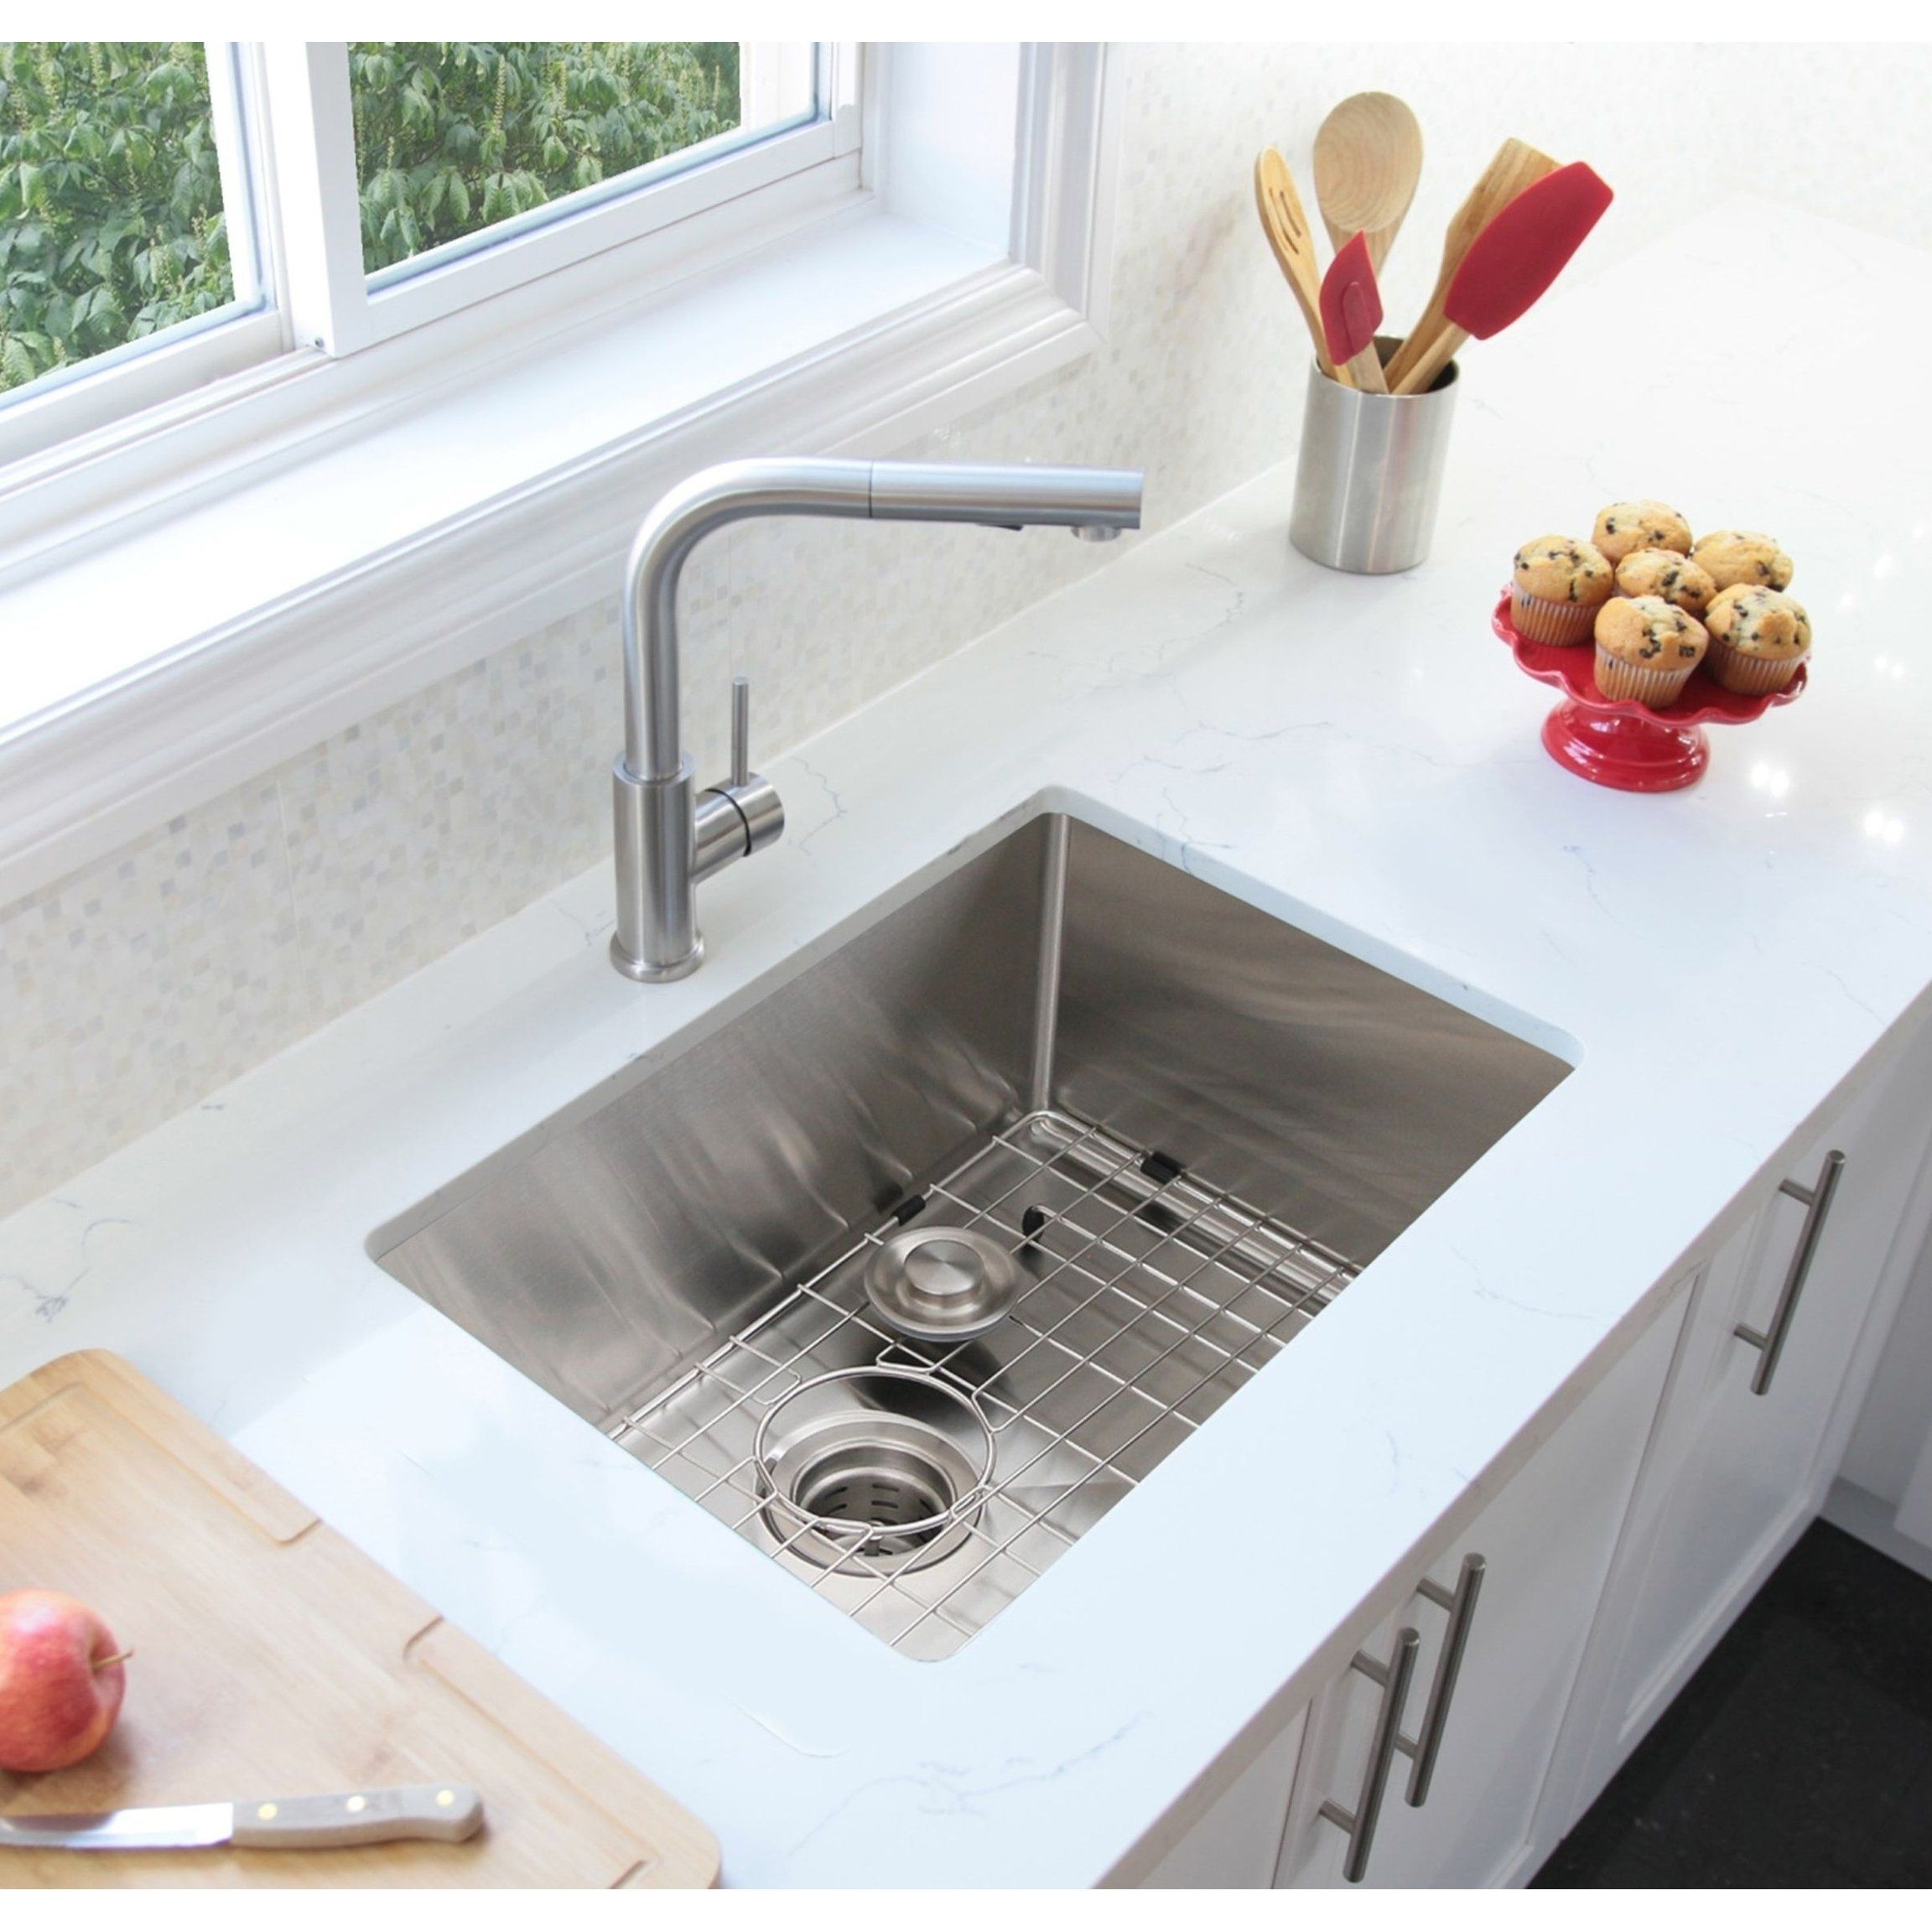 28 Undermount Single Bowl Kitchen Sink 16g Stainless Steel With Grid S 30 Single Bowl Kitchen Sink Double Bowl Kitchen Sink Undermount Kitchen Sinks